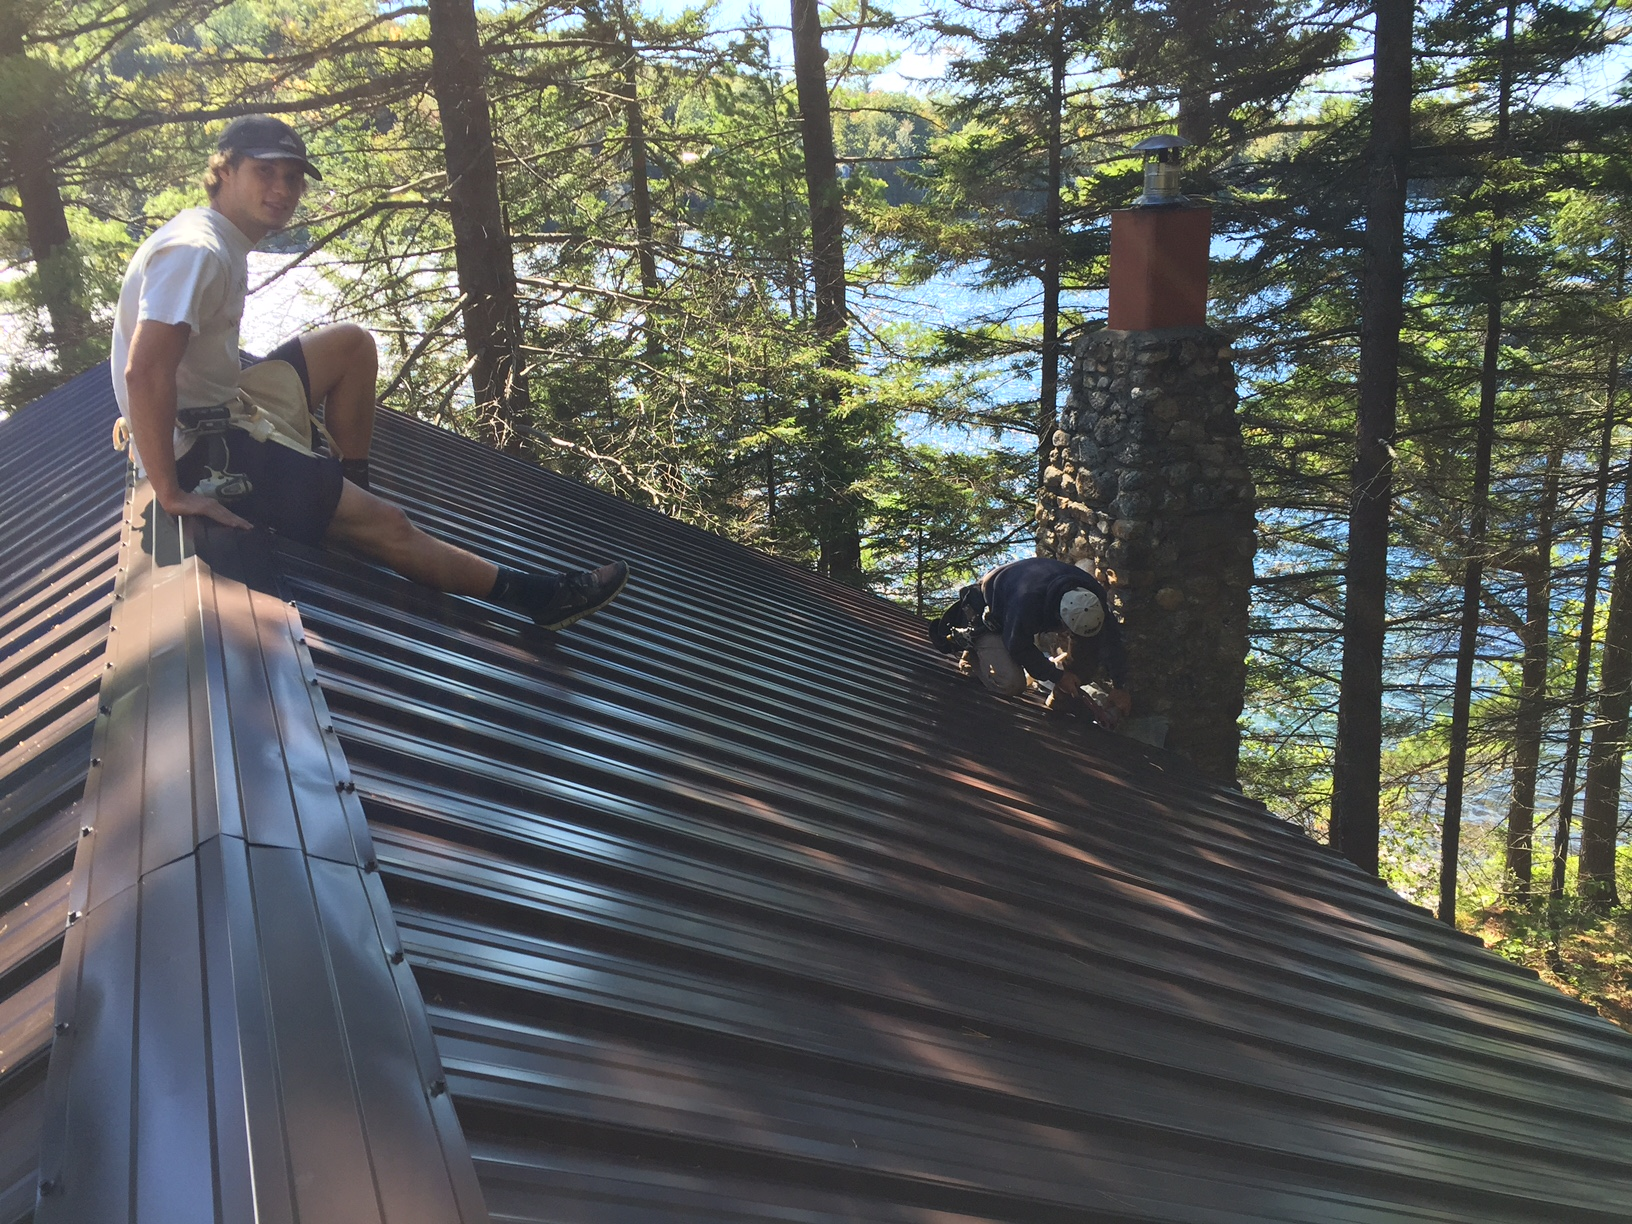 A beautiful day with Nan feeling it and Bill finishing up the caulking near the chimney